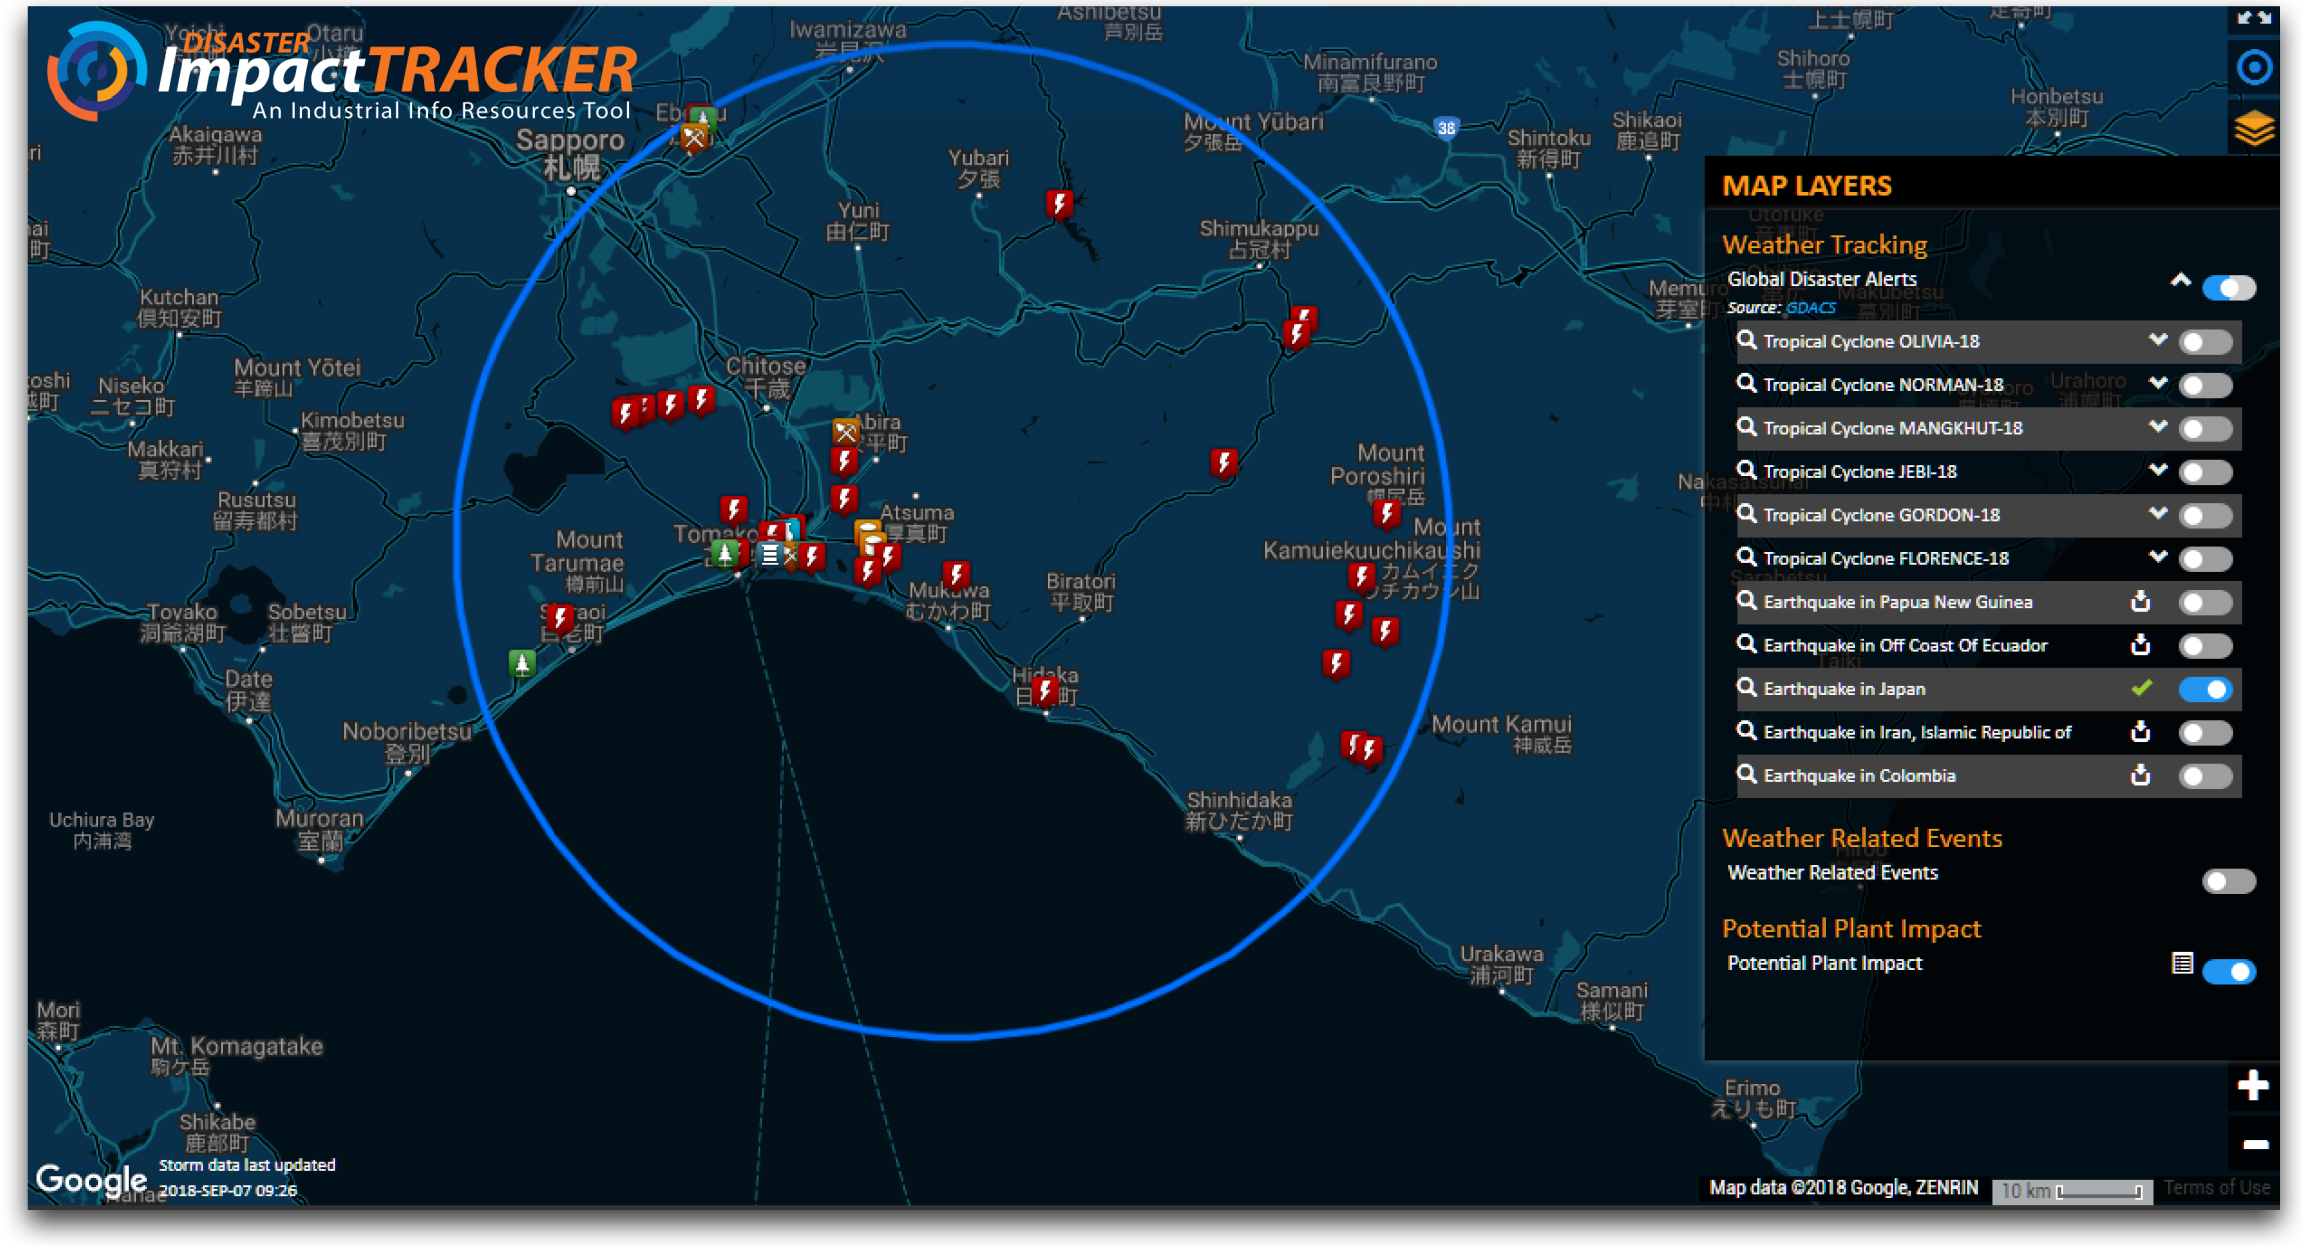 Disaster Impact Tracker - Hokkaido Island of Japan Earthquake